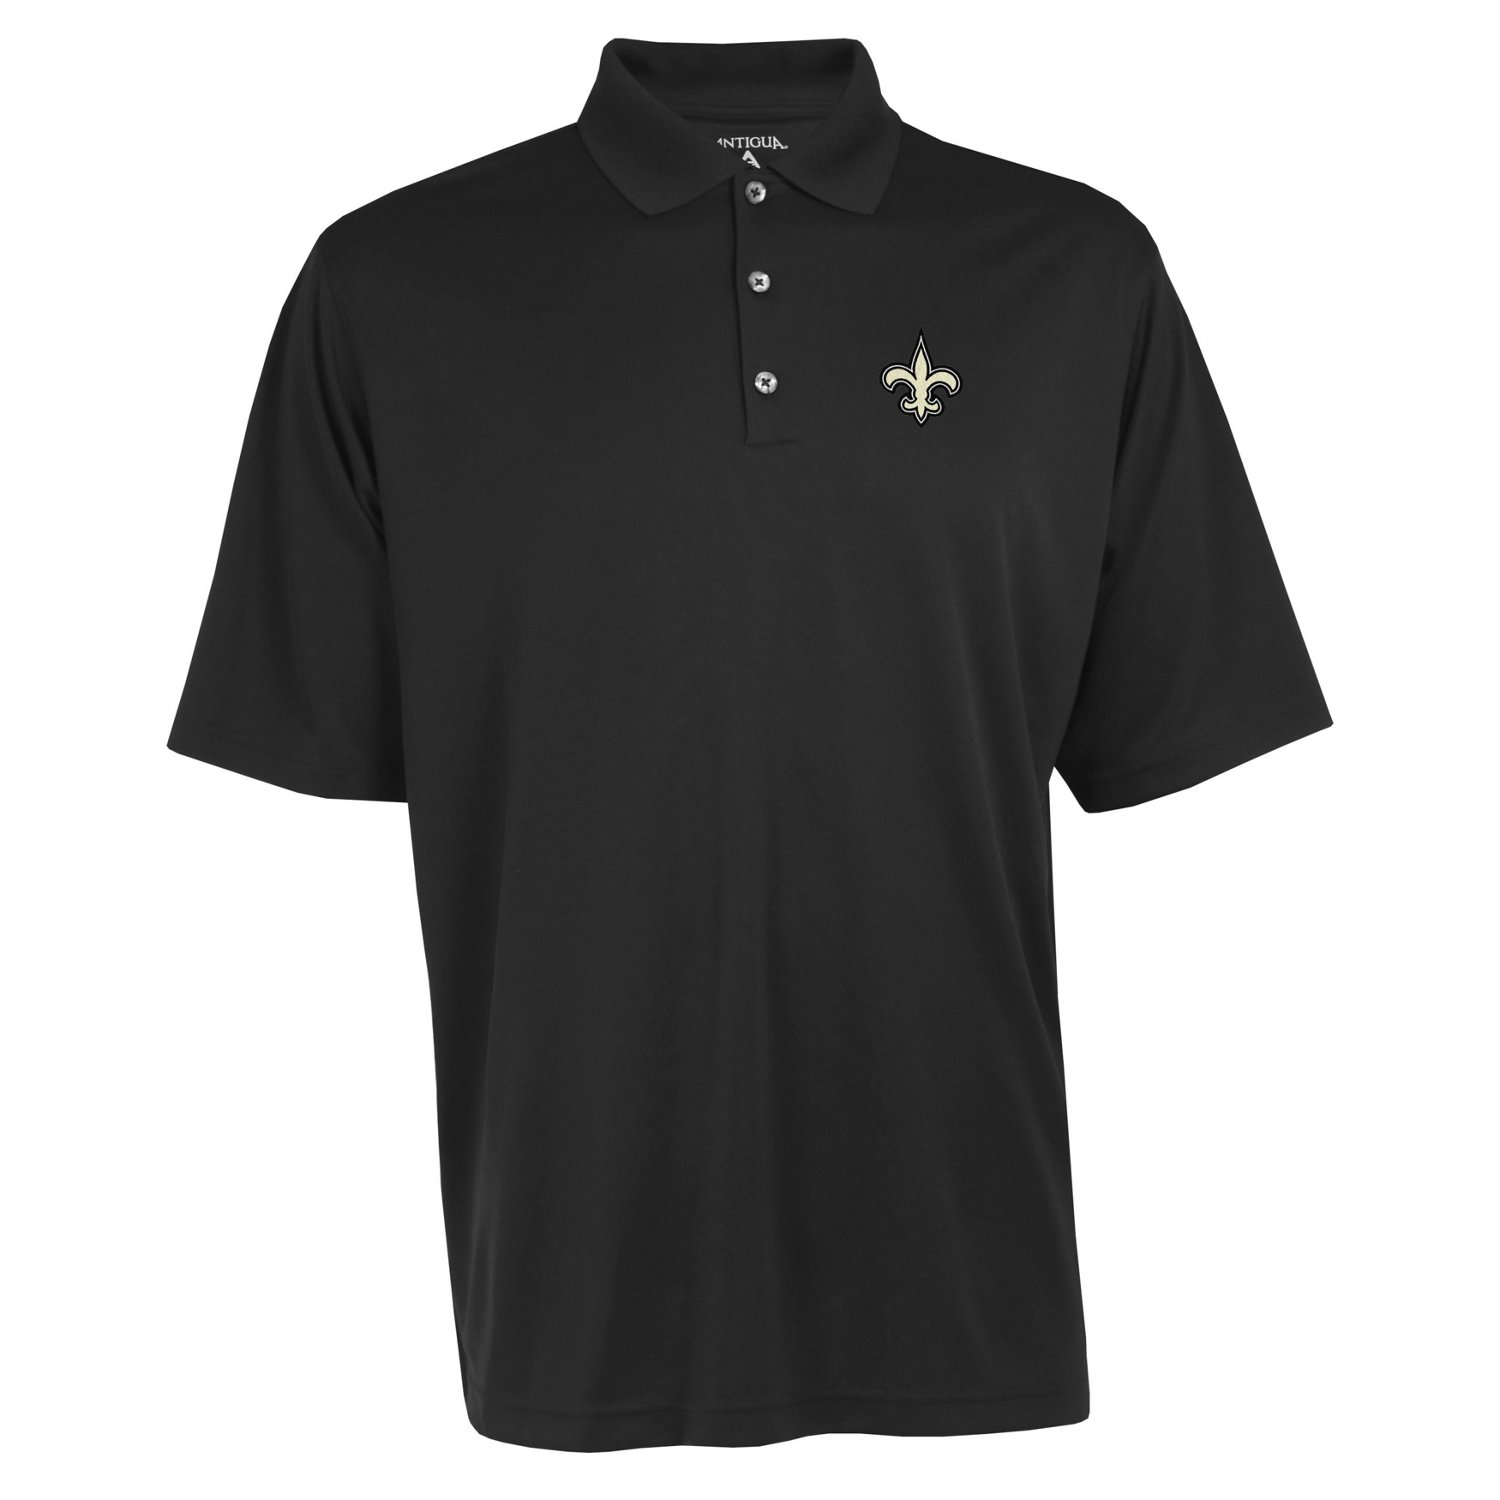 d06406bde71 Display product reviews for Antigua Men's New Orleans Saints Exceed Polo  Shirt